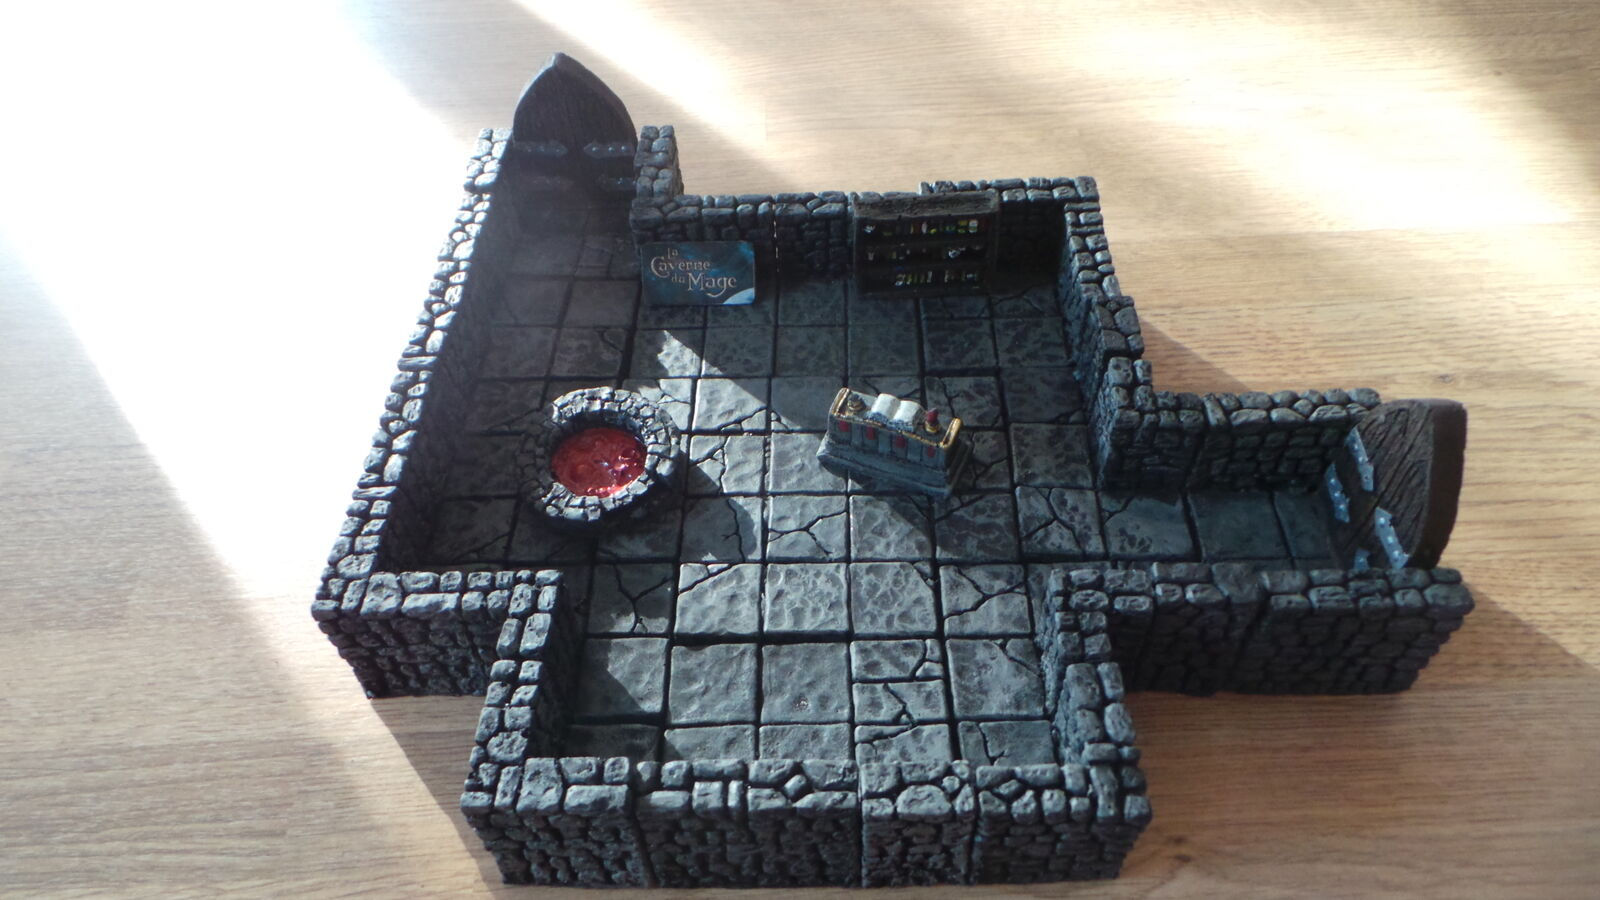 D & D Warhammer Scenery Labor des Magier des Zauberers Scrying Chamber (25 28mm)